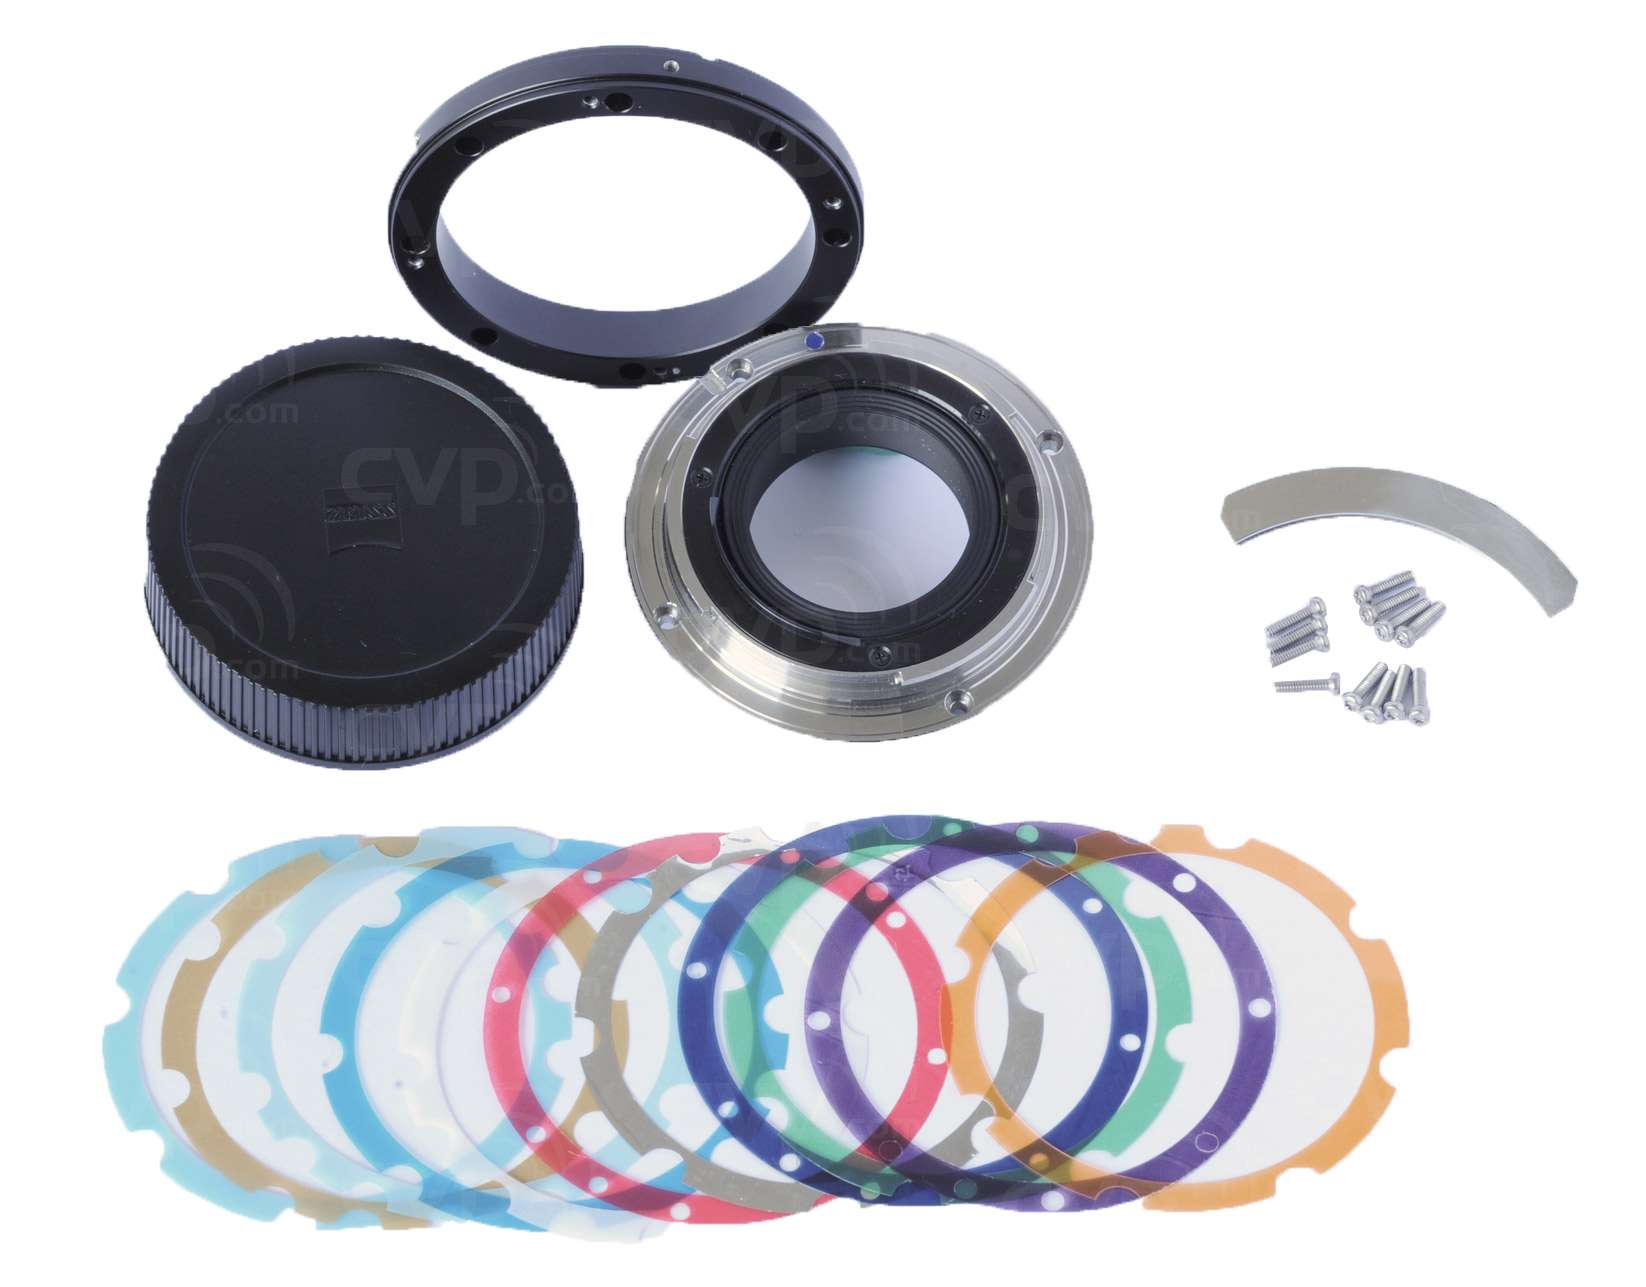 Zeiss IMS for CP 3 21/25/28/35mm Lenses